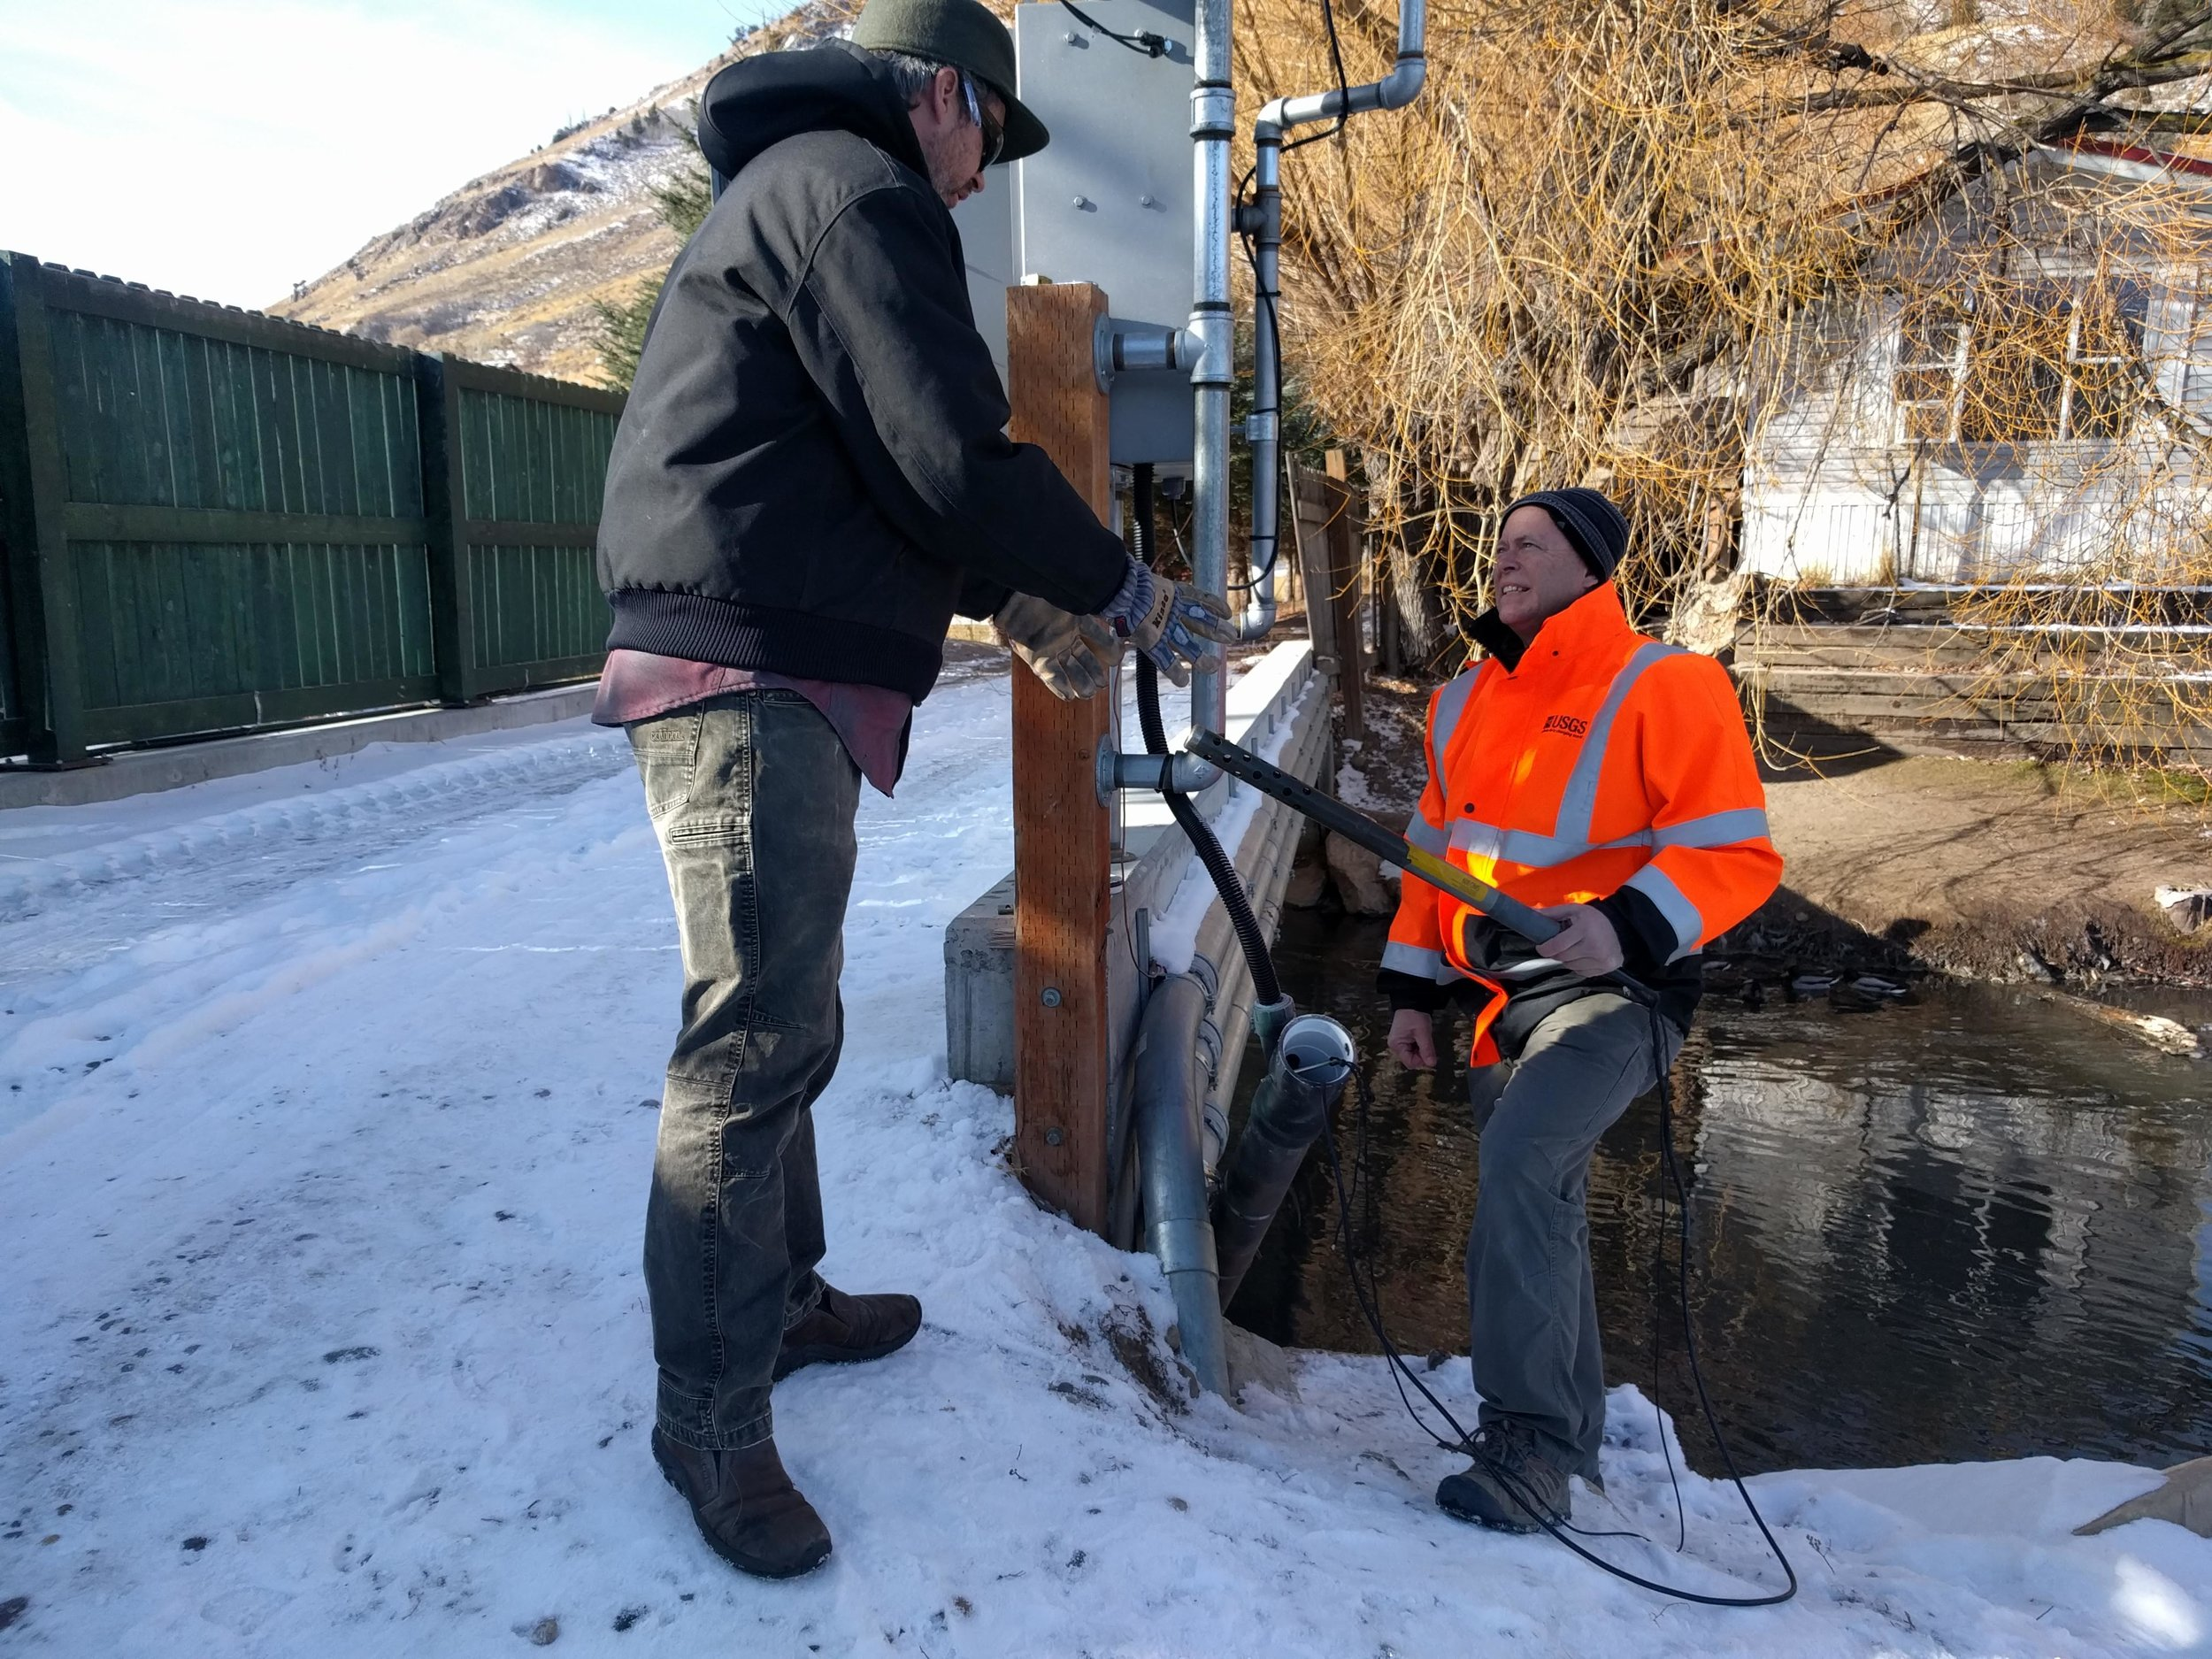 Carlin Girard of Teton Conservation District and Chris Ellison of USGS checking on the turbidity monitor in Flat Creek.